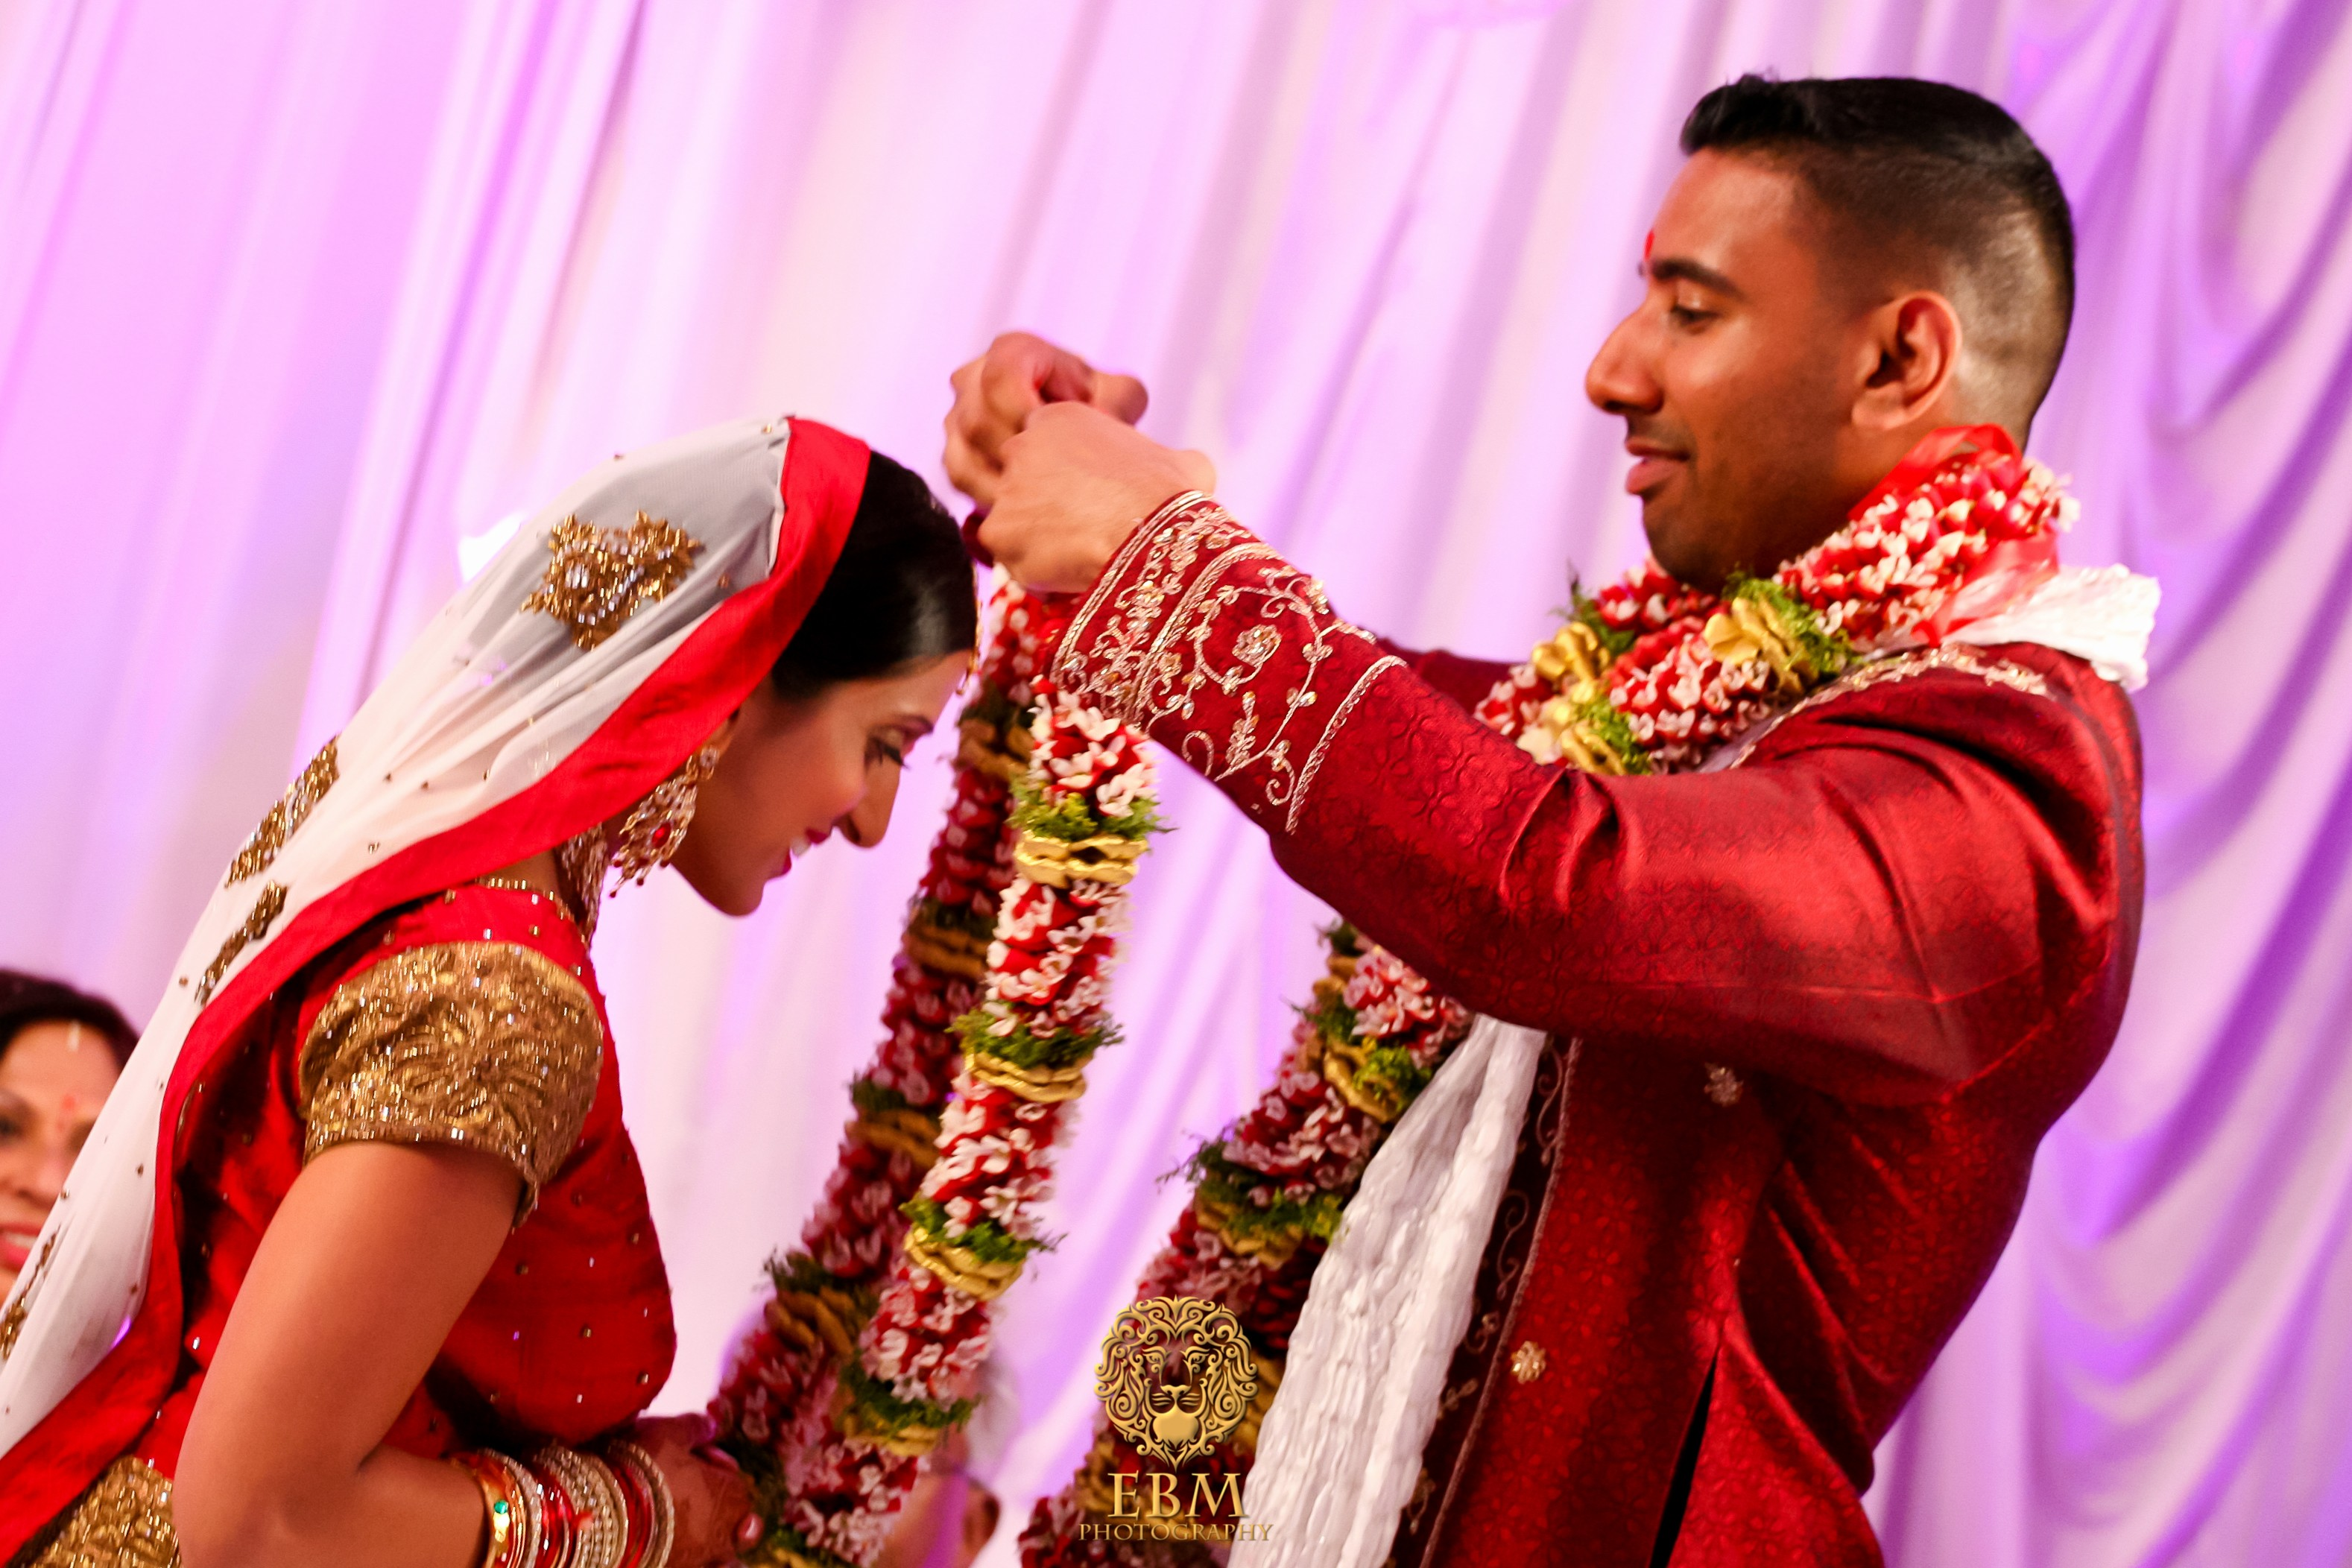 The Essential Guide to Hindu Weddings: Shopping List - The Big Fat ...